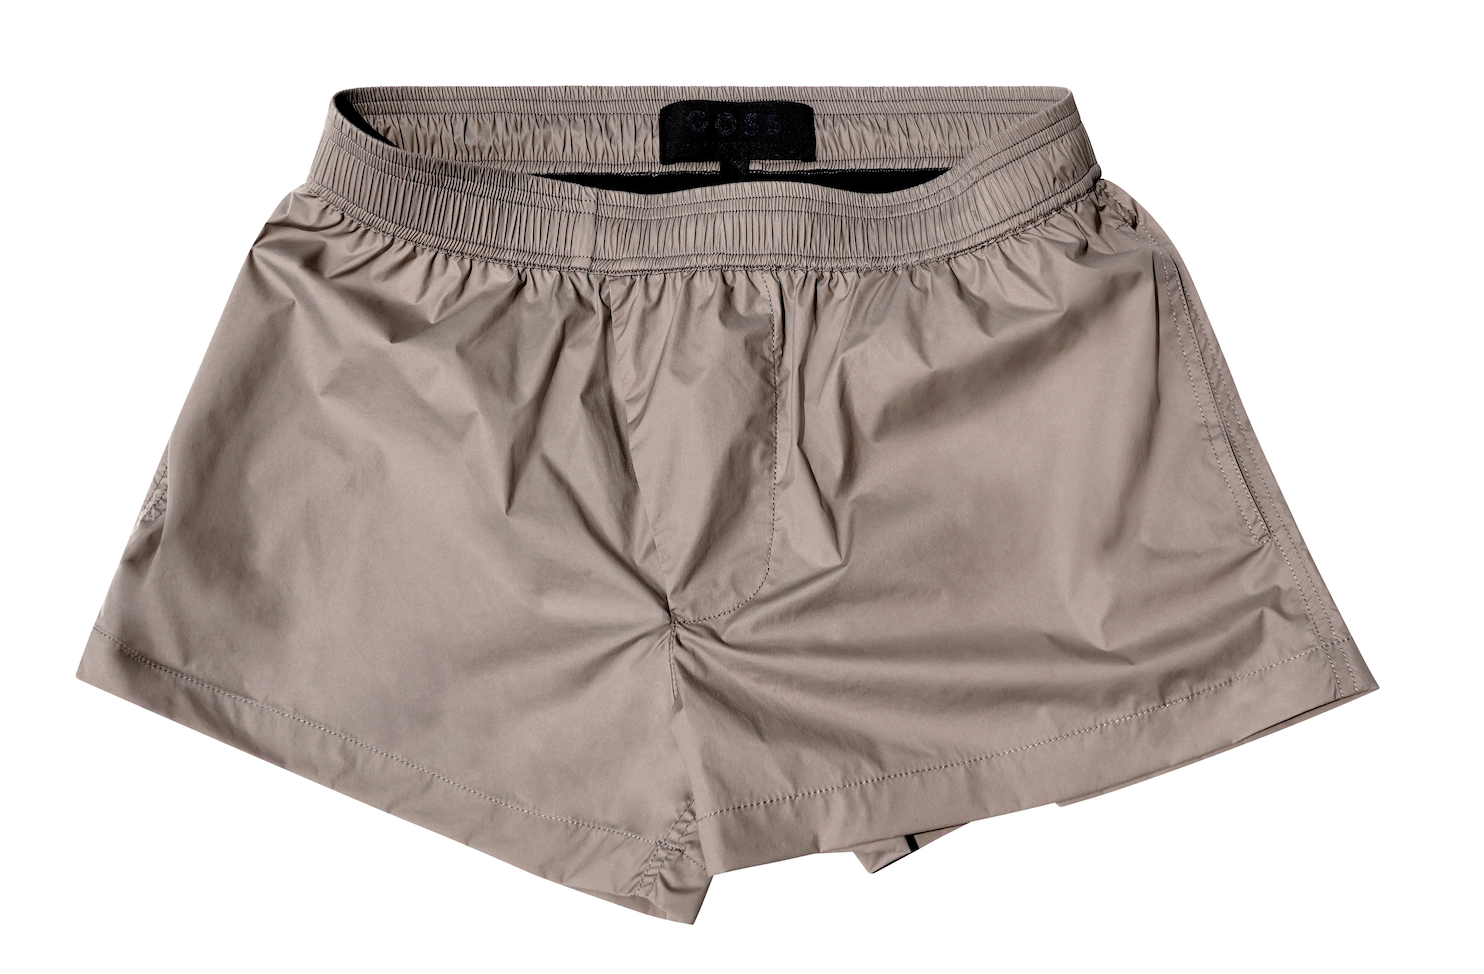 NITEROI SWIM SHORT